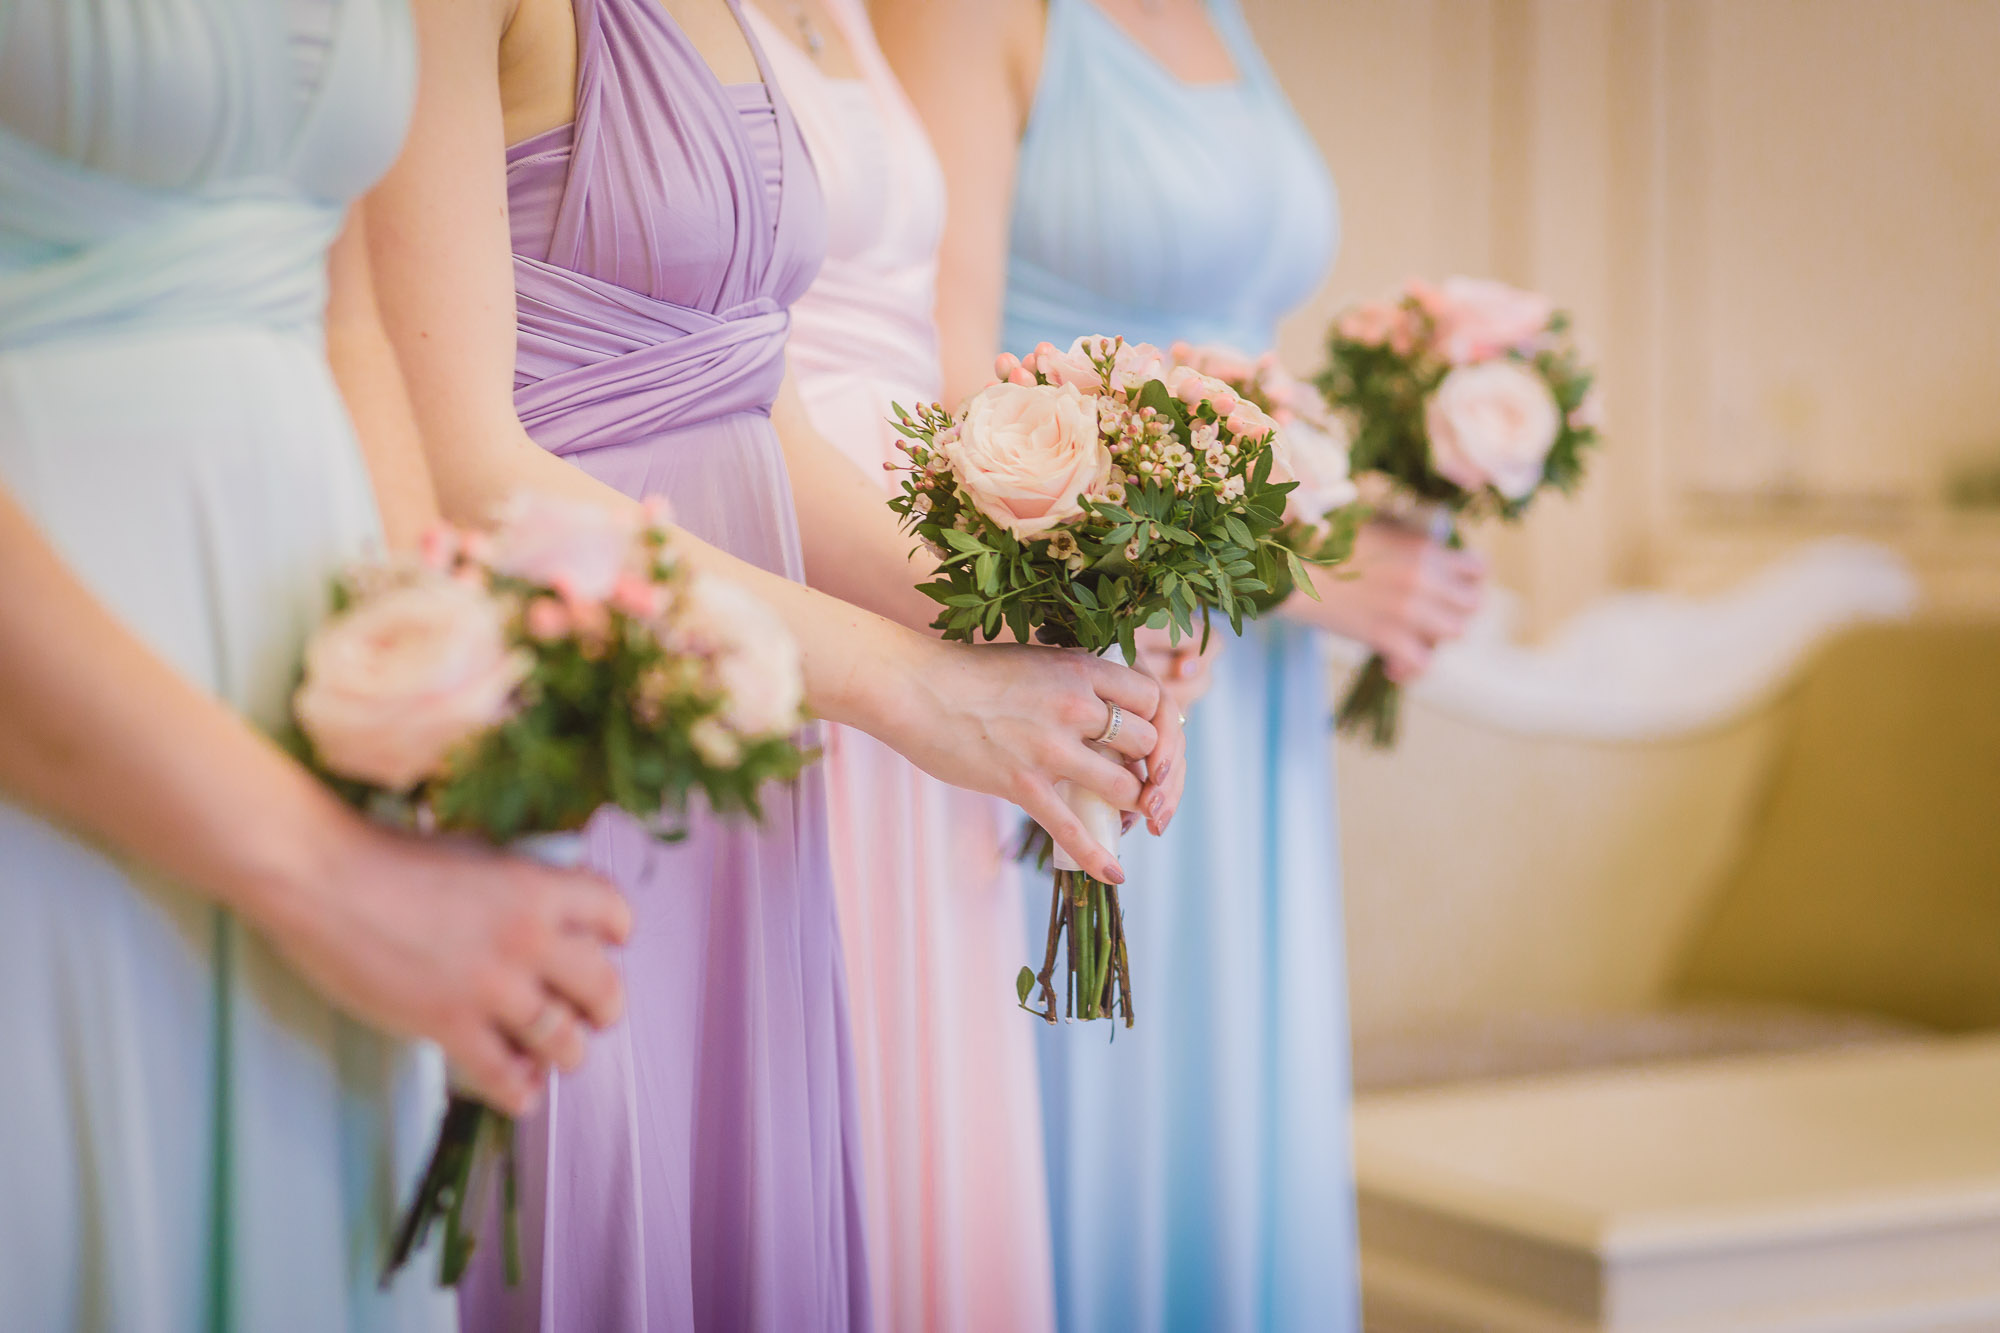 Wedding-photographs-5056